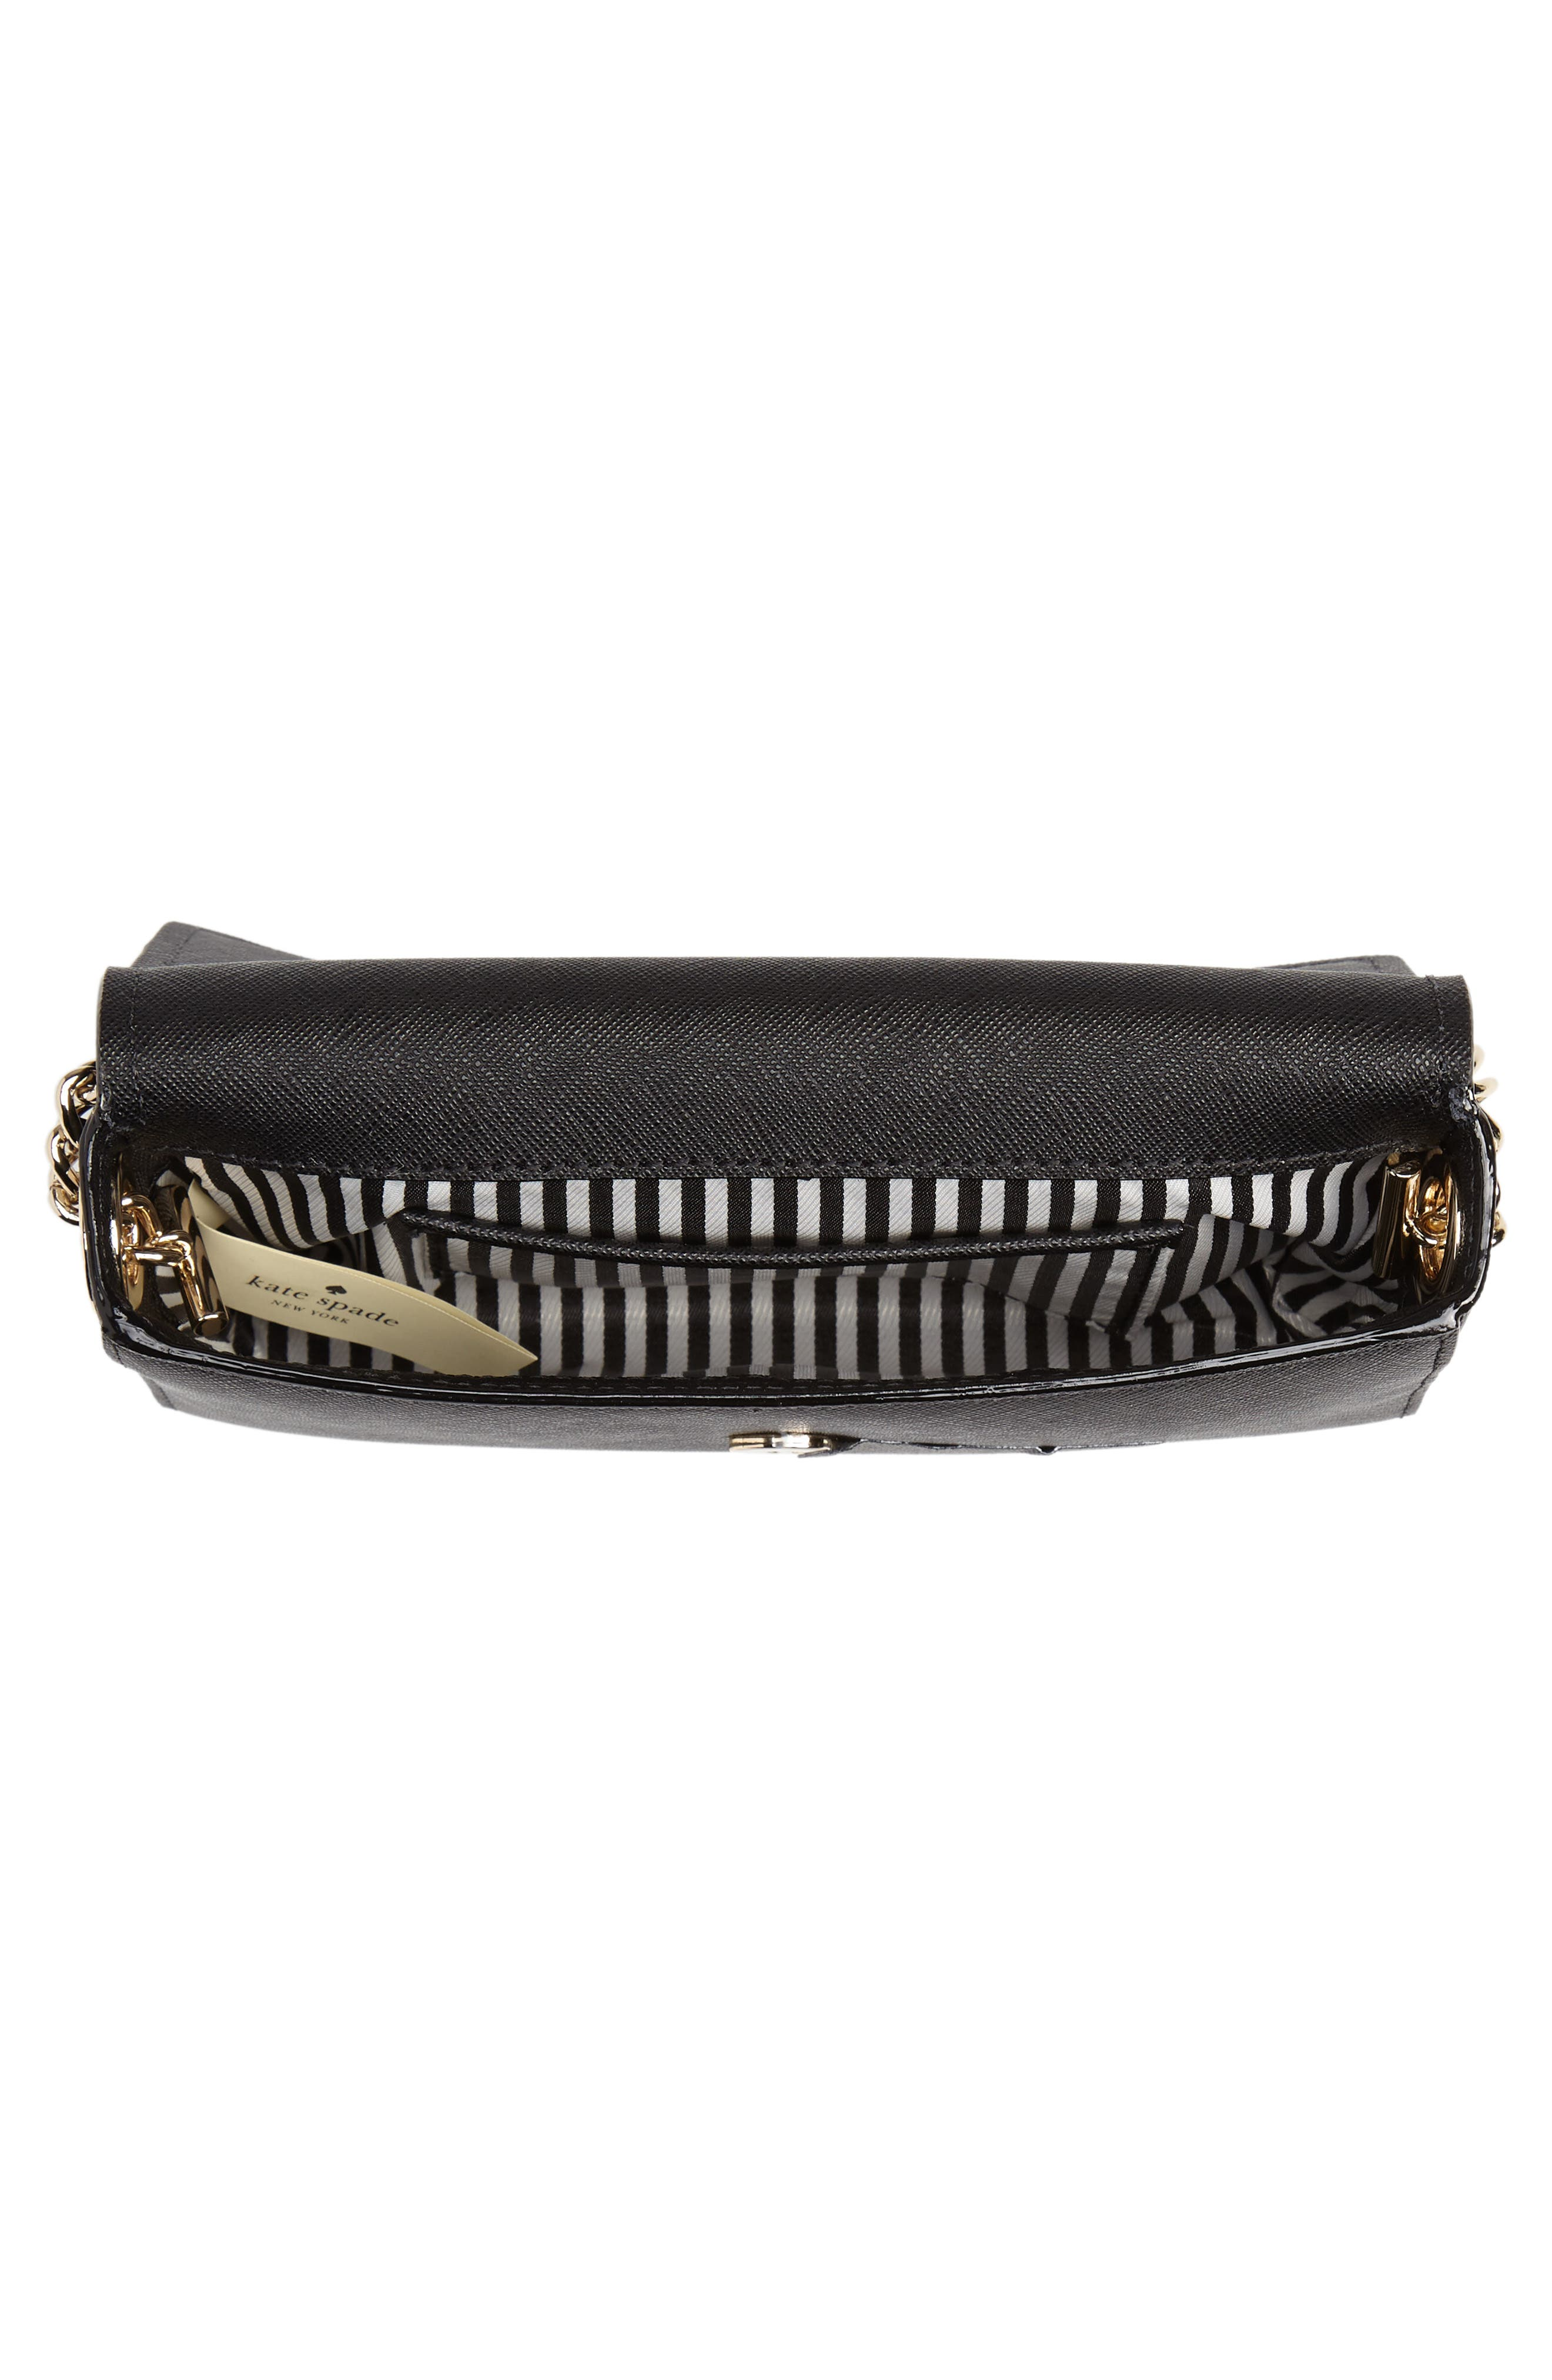 cameron street - delilah belt bag,                             Alternate thumbnail 5, color,                             BLACK